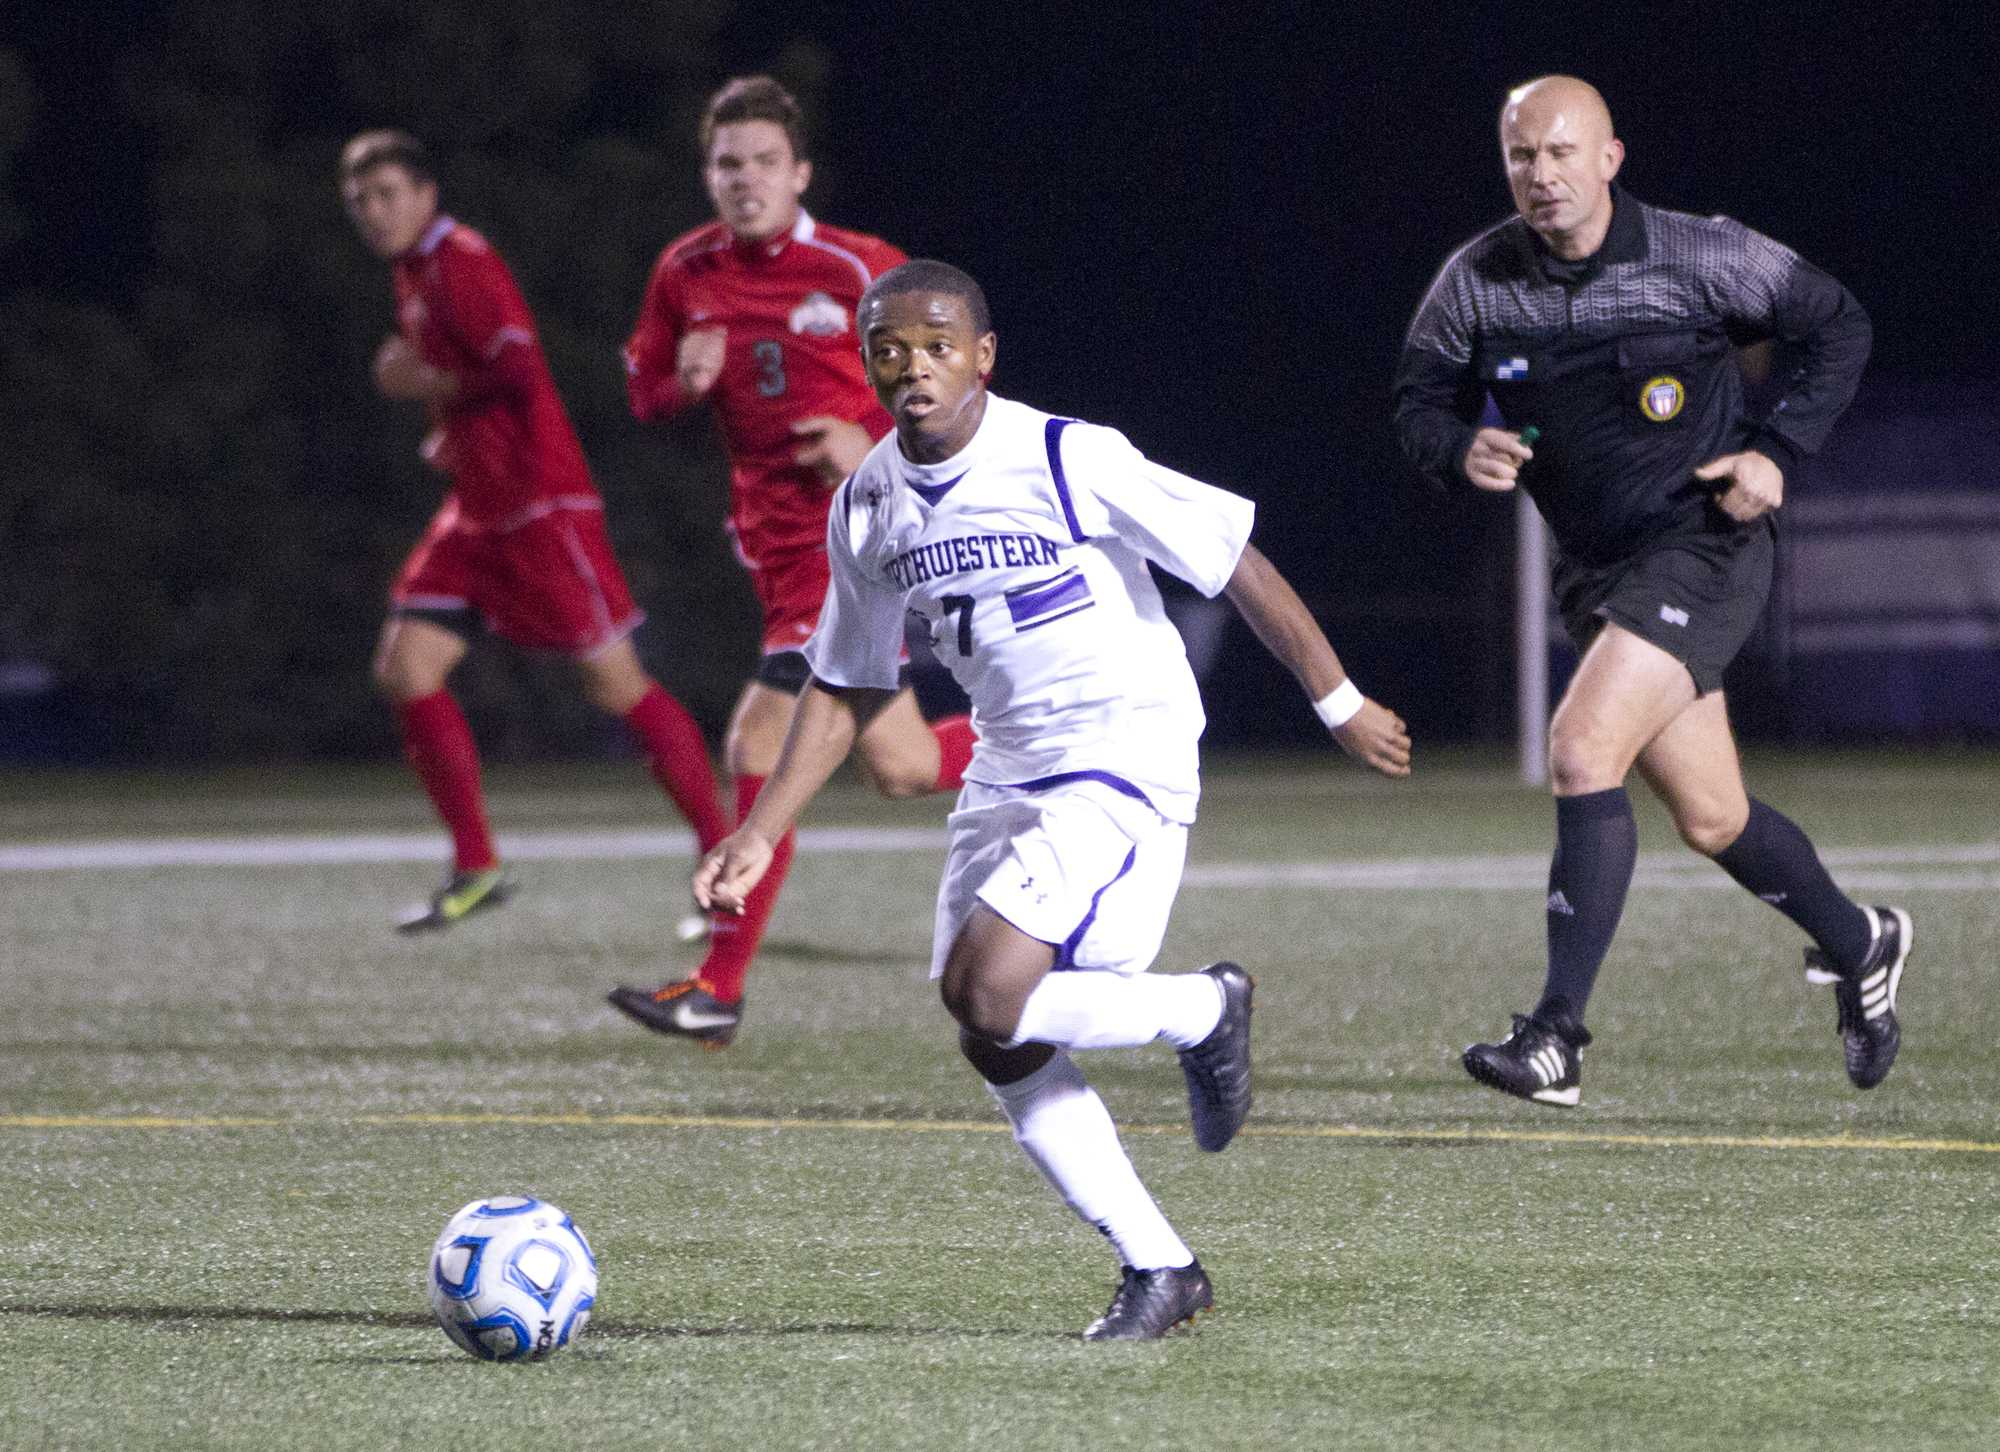 Northwestern midfielder Lepe Seetane traveled a long path that has led him from Lesotho to the Wildcats' starting lineup. One of the headlines of a strong recruiting class, Seetane's time with the team has been as impressive as it was unlikely.